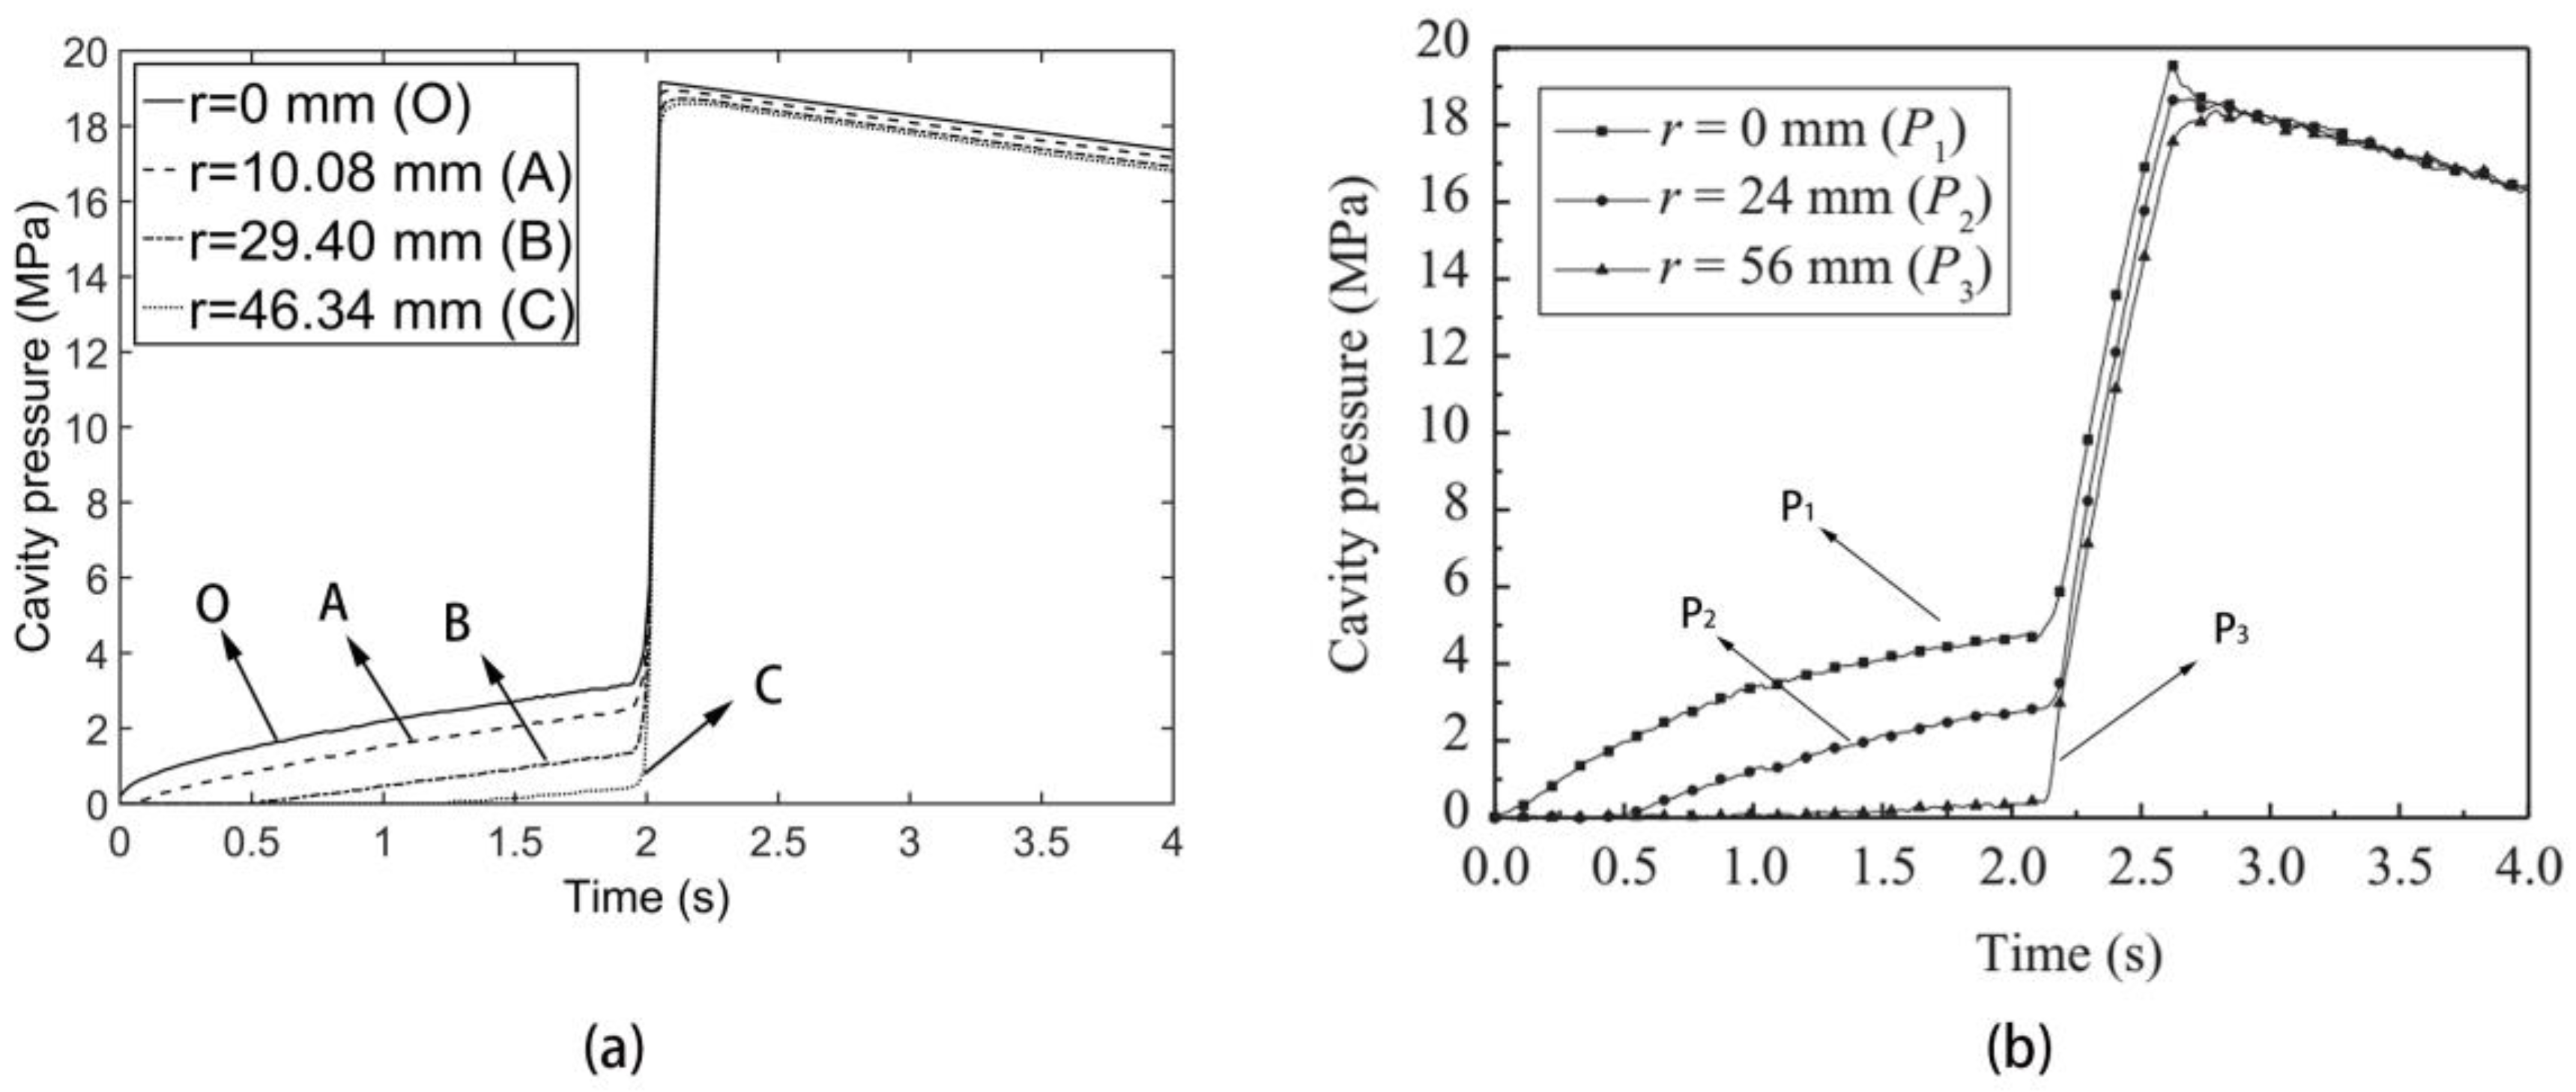 Polymers | Free Full-Text | Pressure Analysis of Dynamic Injection